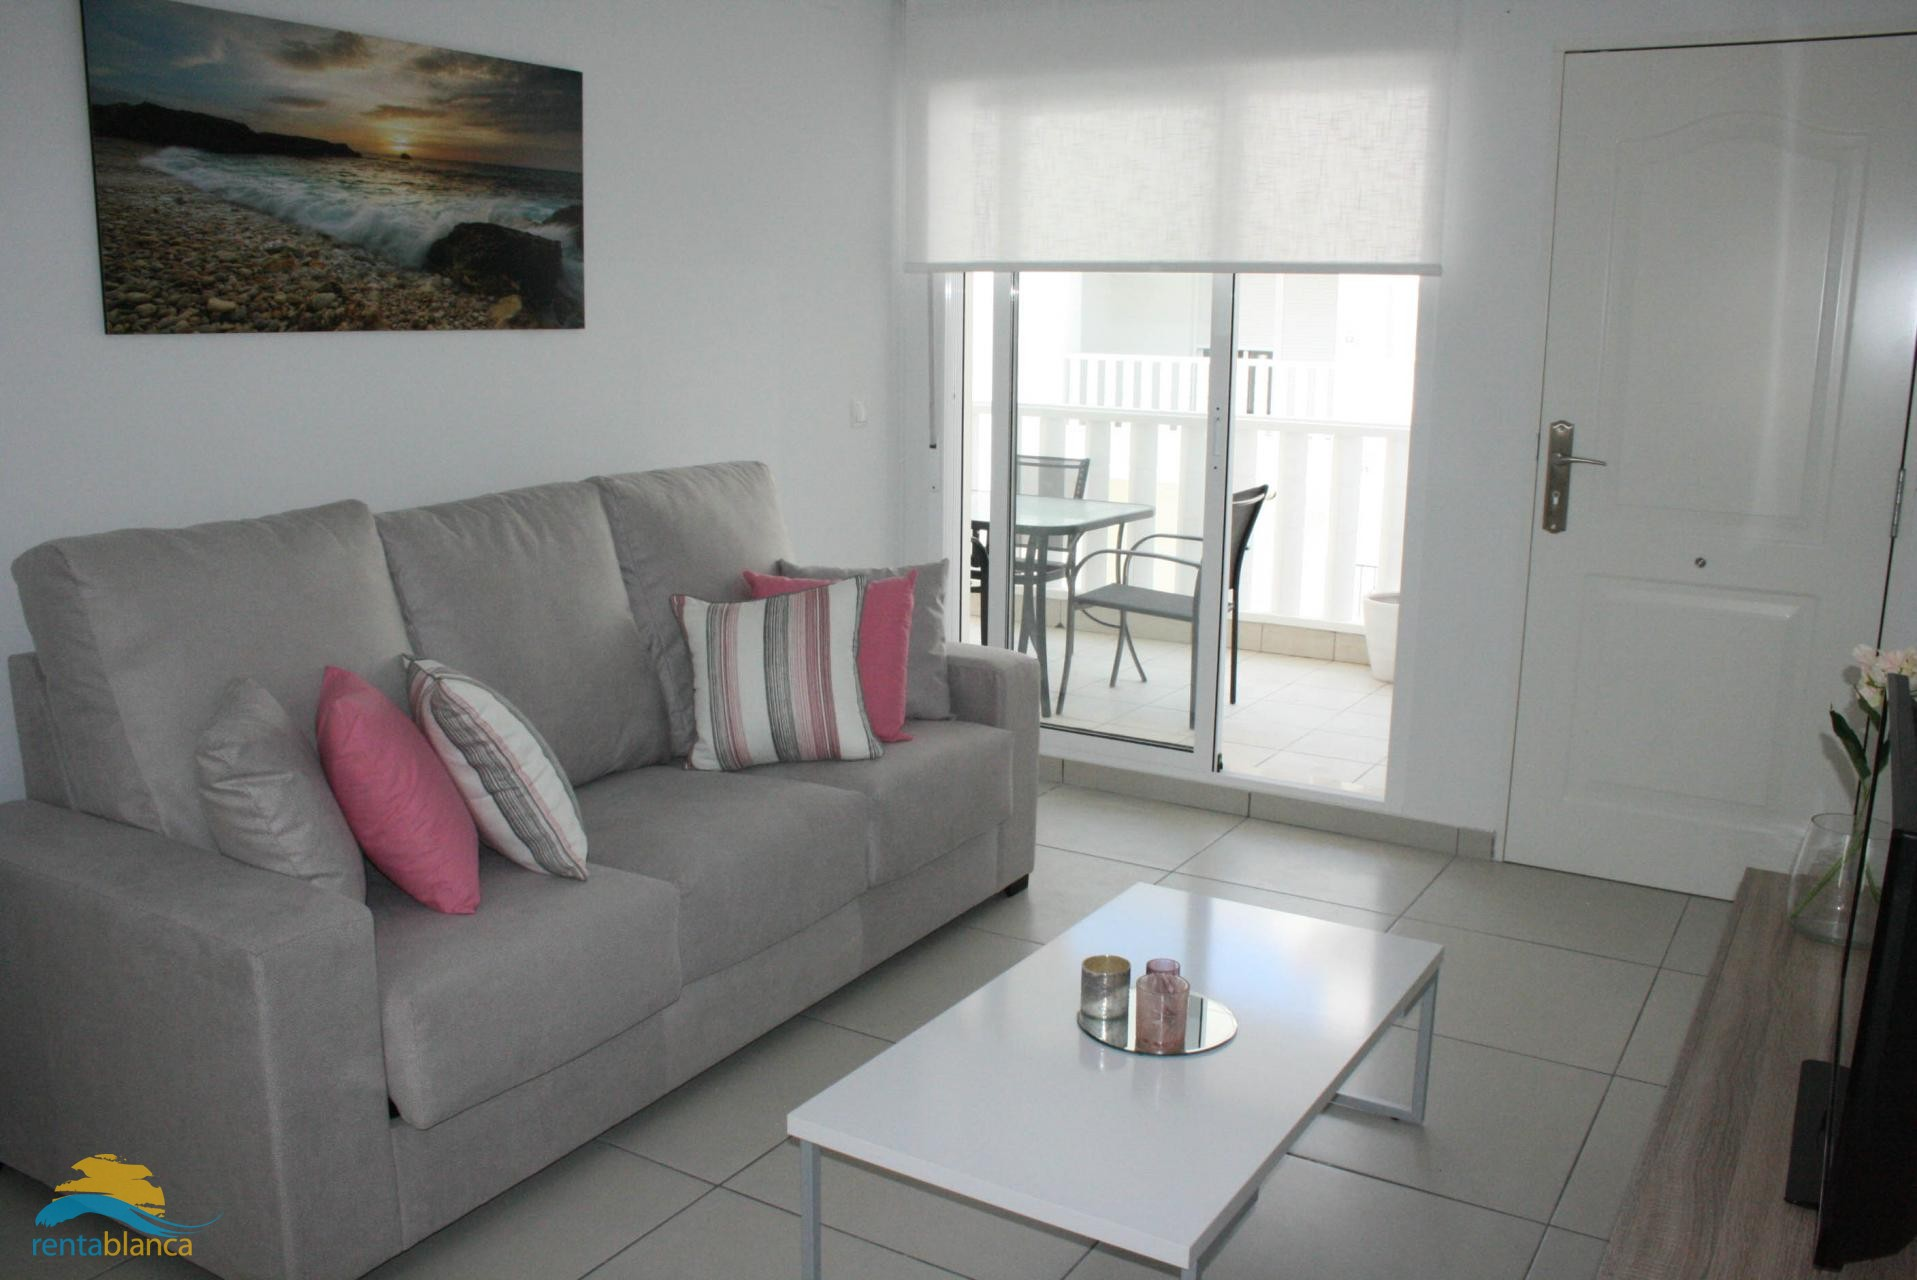 Apartment El Pinet Beach 64 - Rentablanca